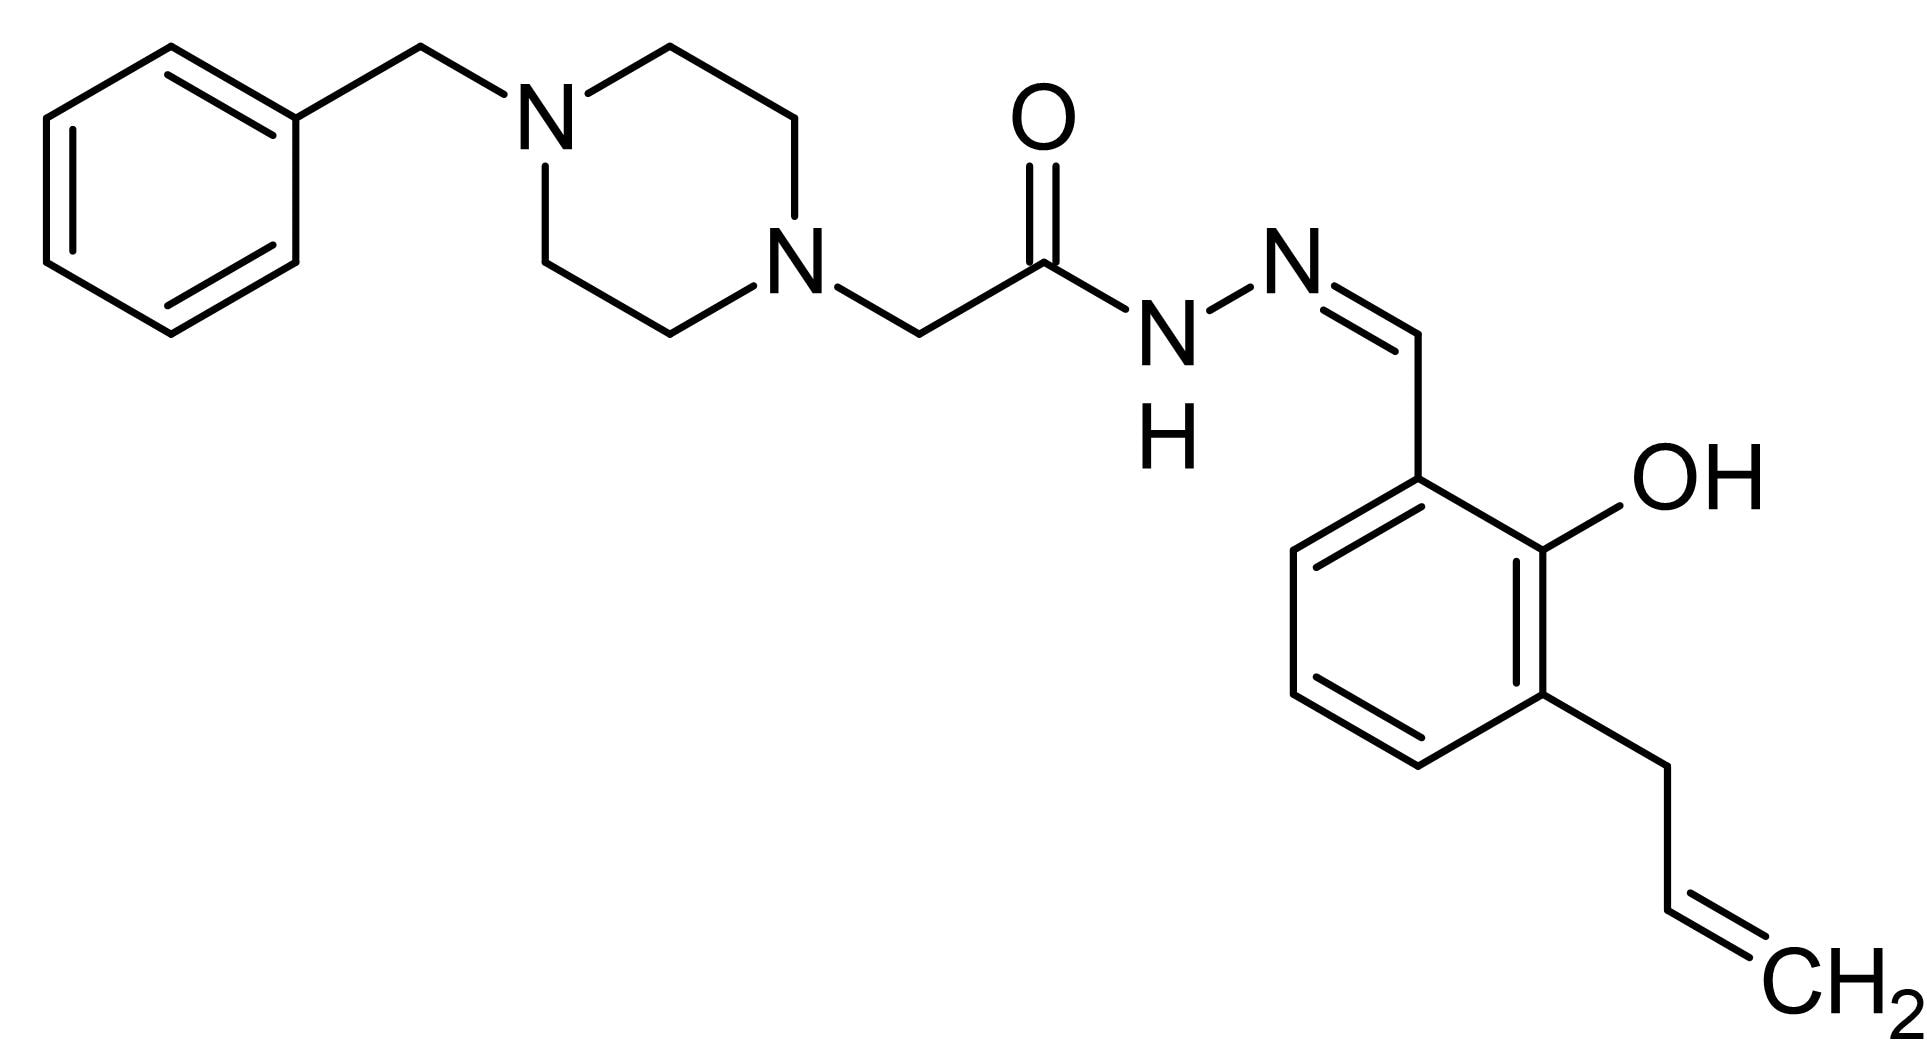 Chemical Structure - PAC-1, caspase-3 activator (ab142074)